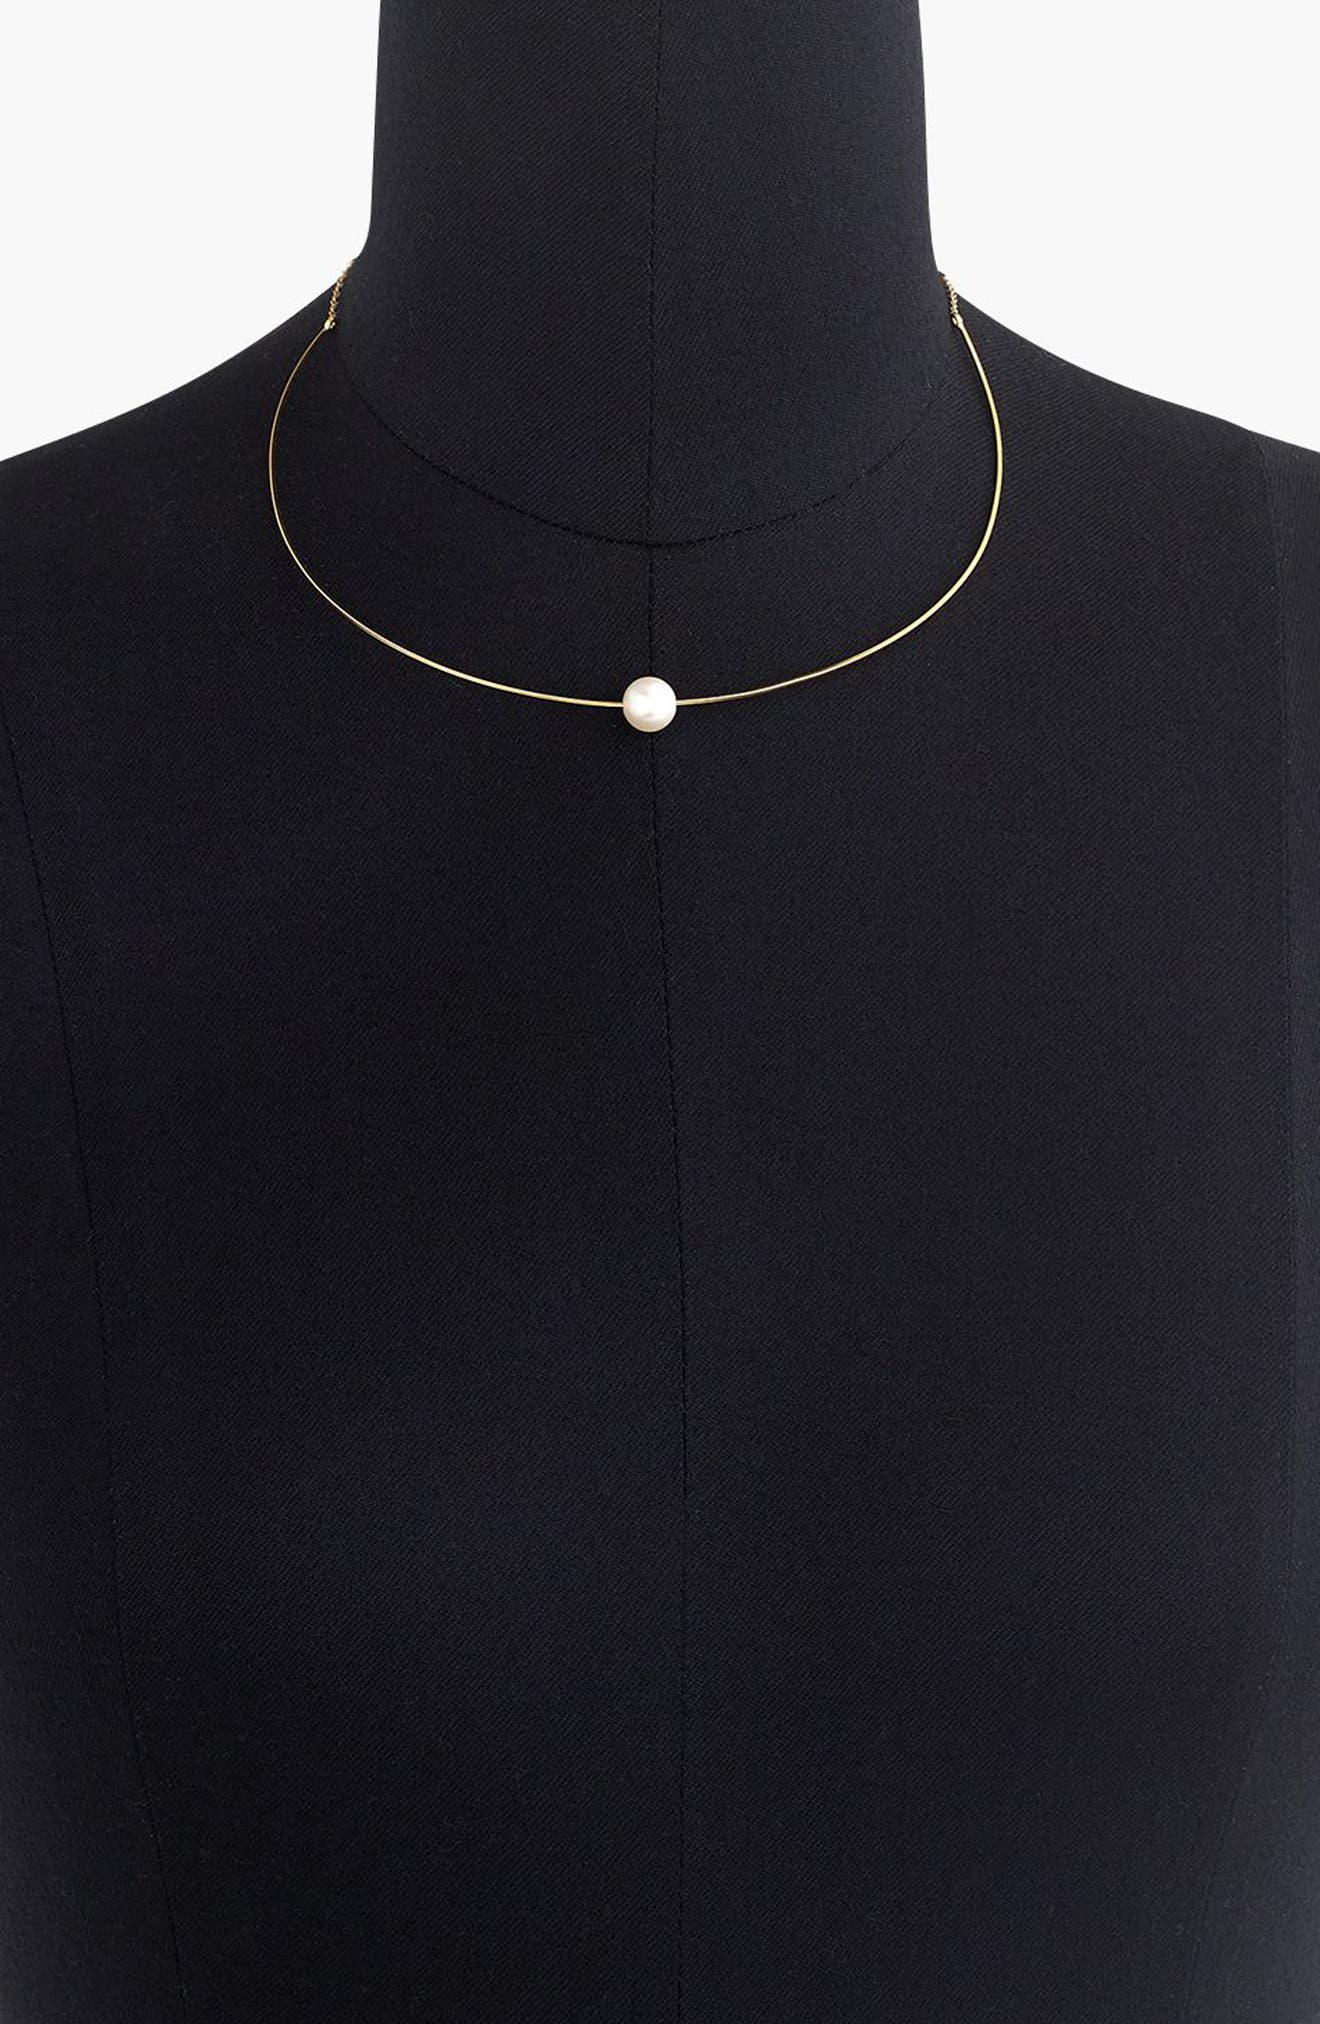 Single Imitation Pearl Collar Necklace,                             Alternate thumbnail 2, color,                             Gold